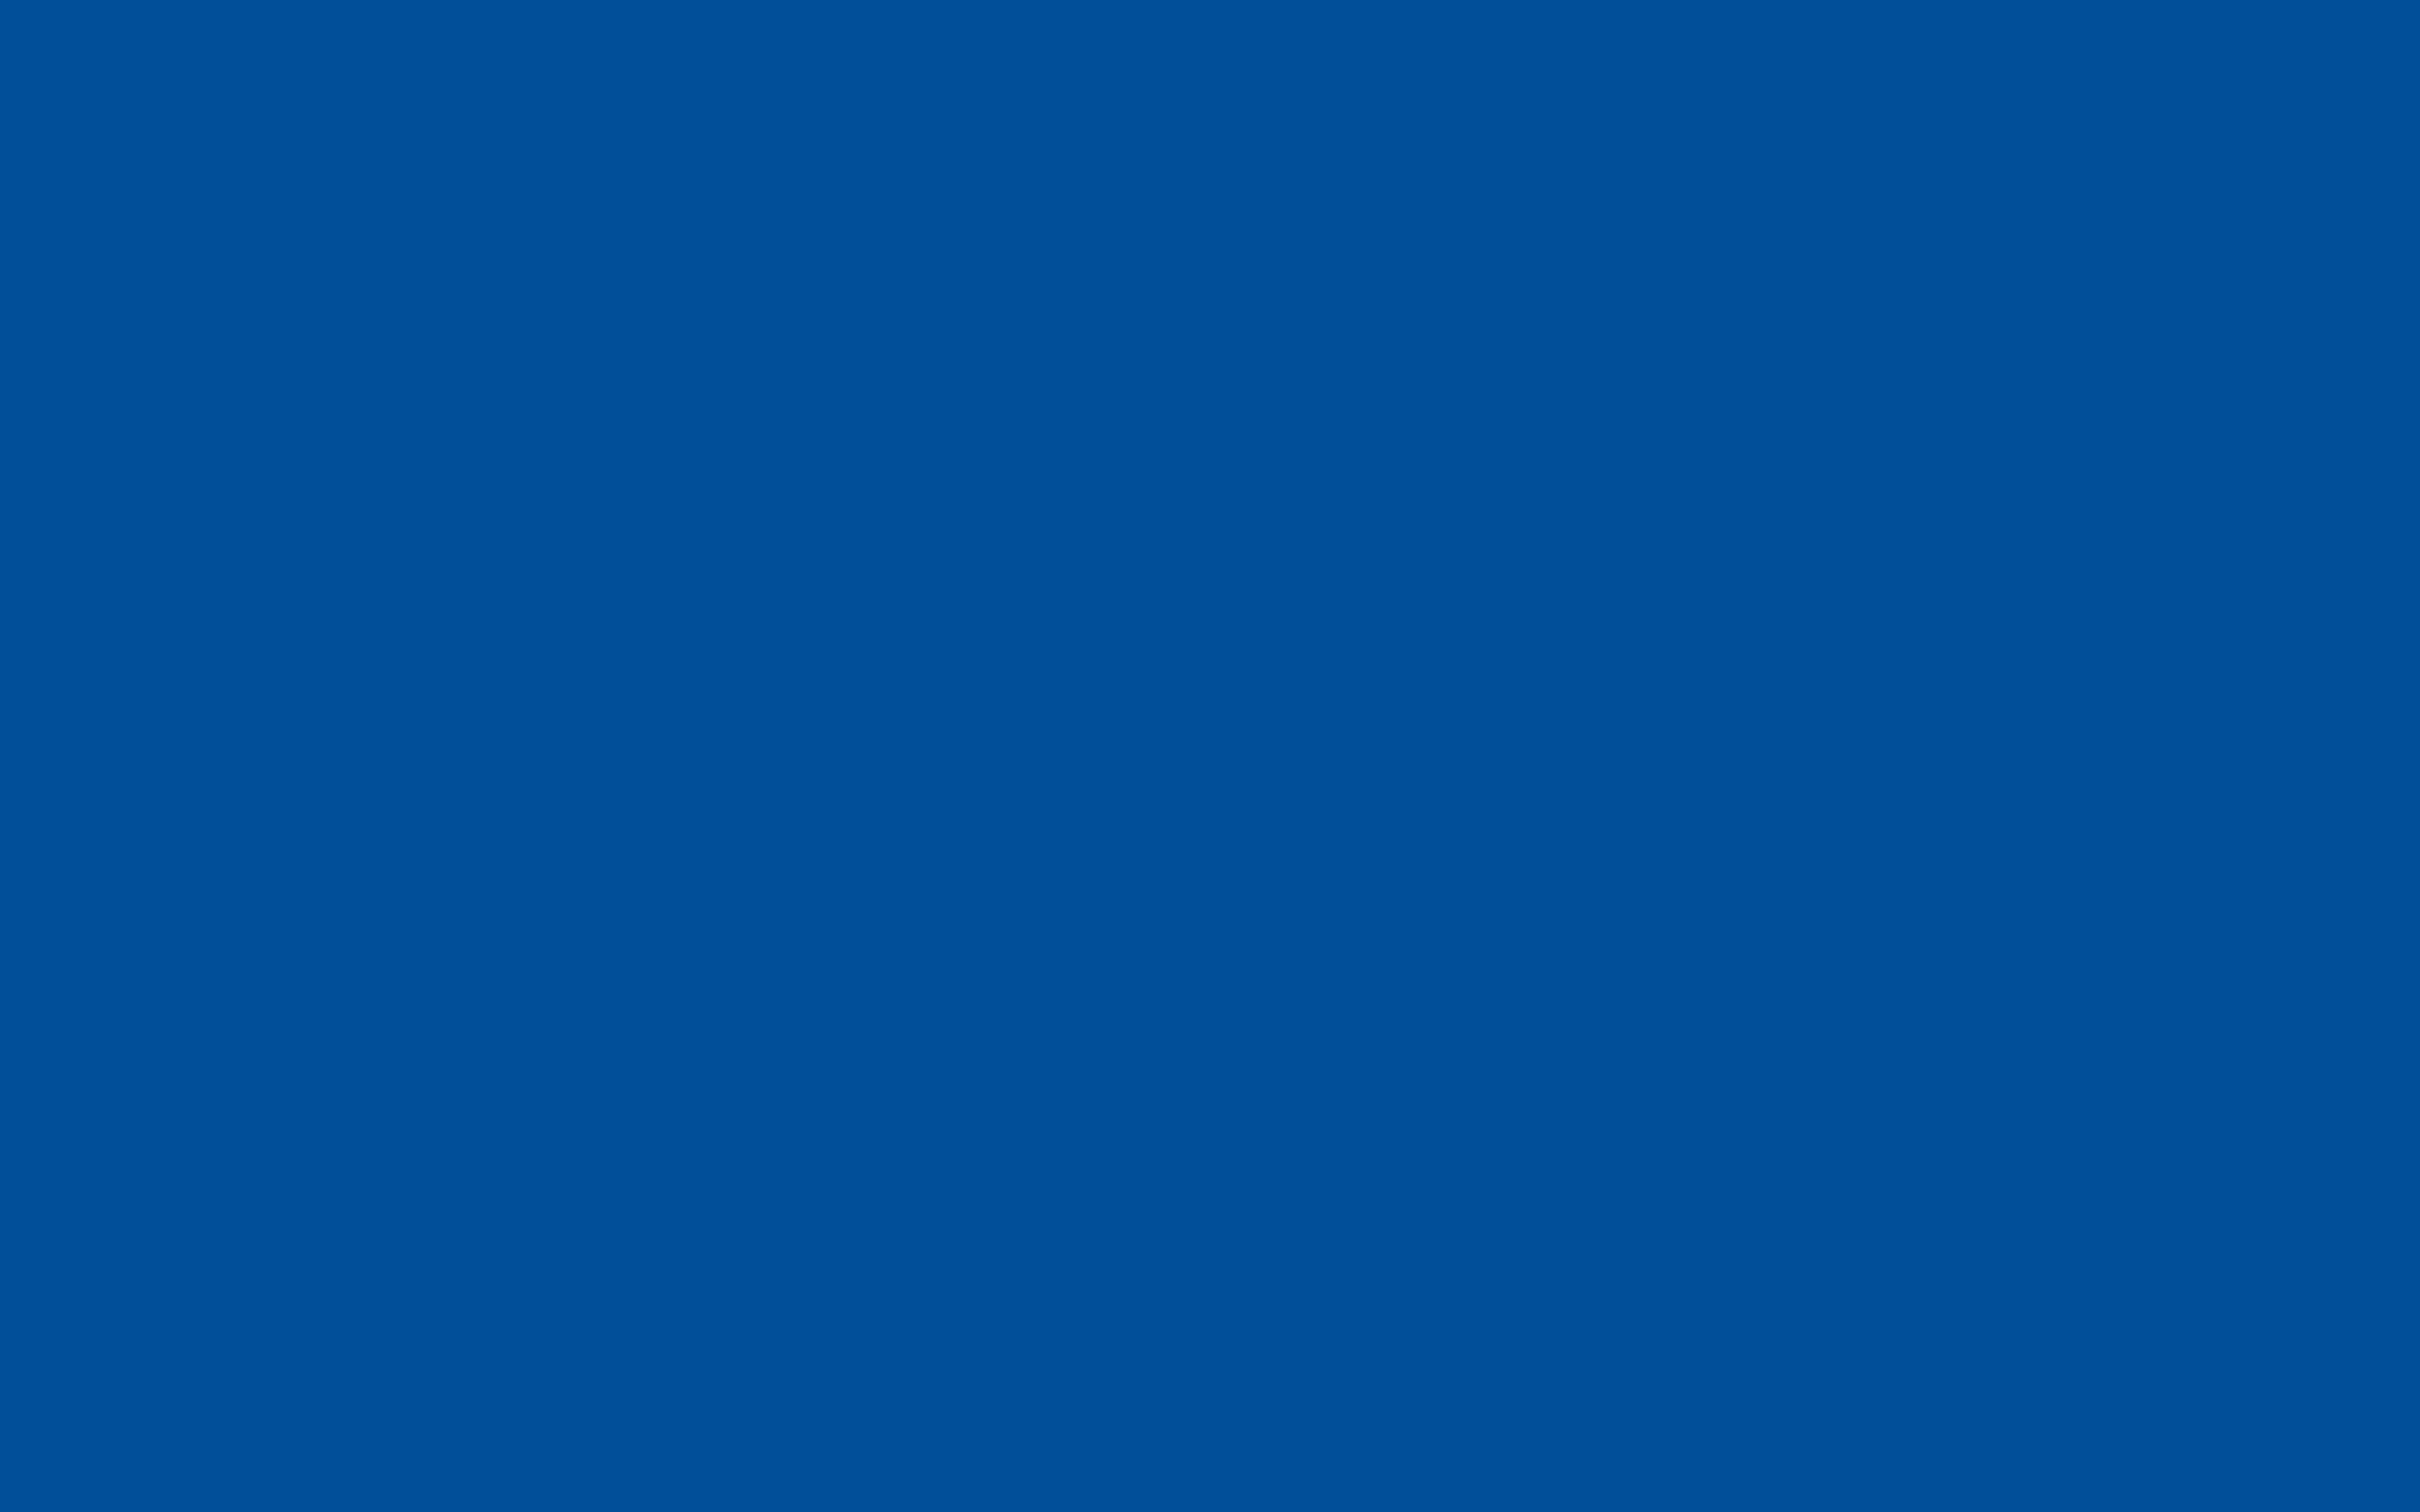 2560x1600 USAFA Blue Solid Color Background